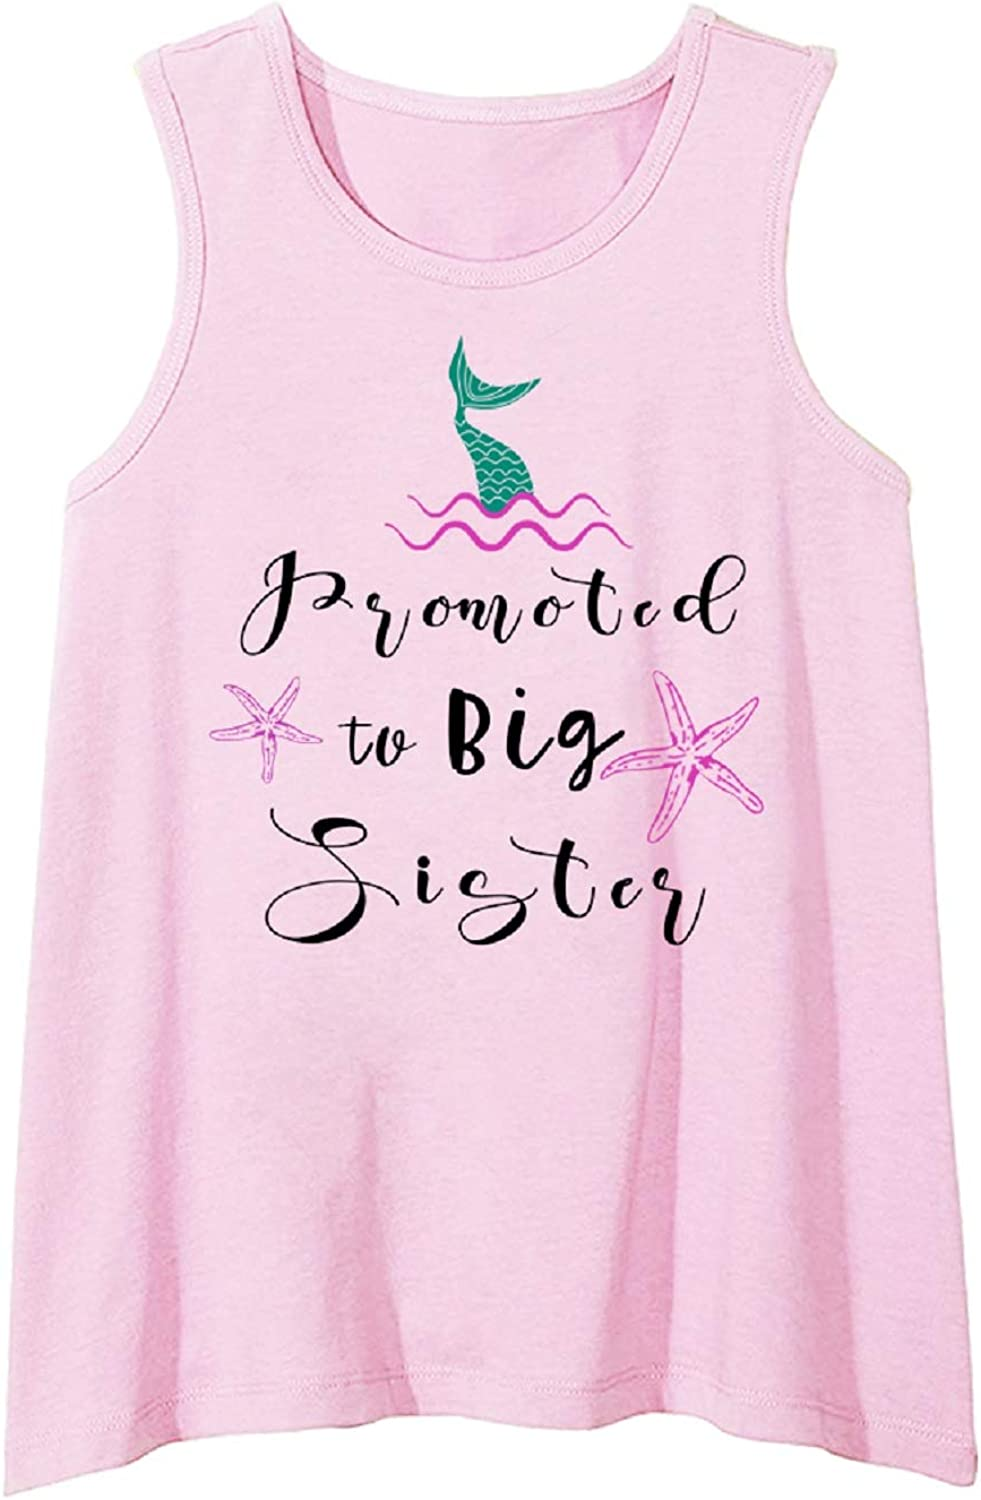 Rixin Toddler Girls Sleeveless Vest Tops Promoted to Big Sister Tank Tops Shirt Baby Kids Summer Clothes